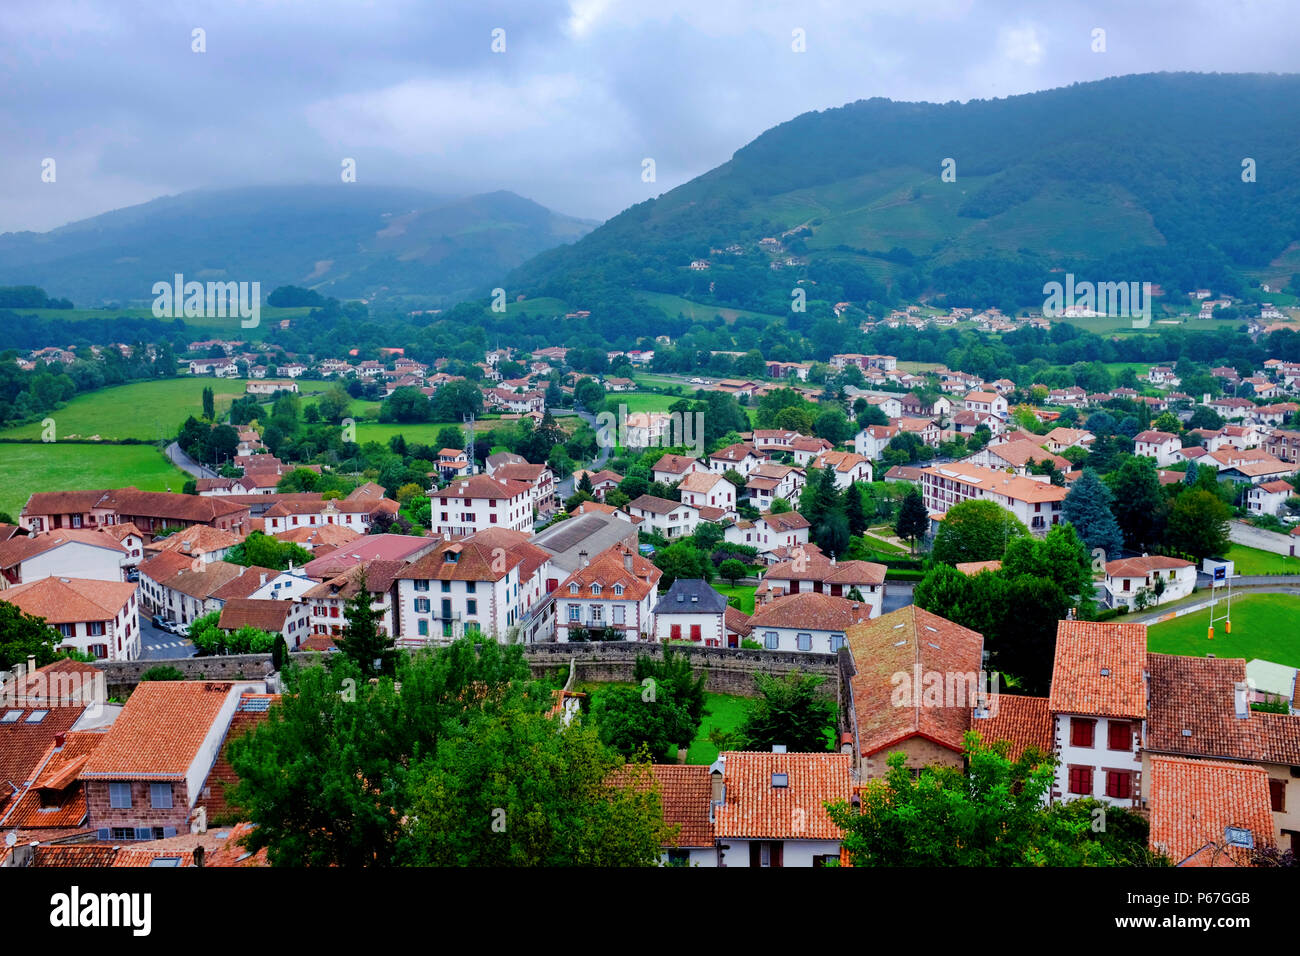 View of Saint Jean Pied de Port as seen from the Citadelle, France - Stock Image